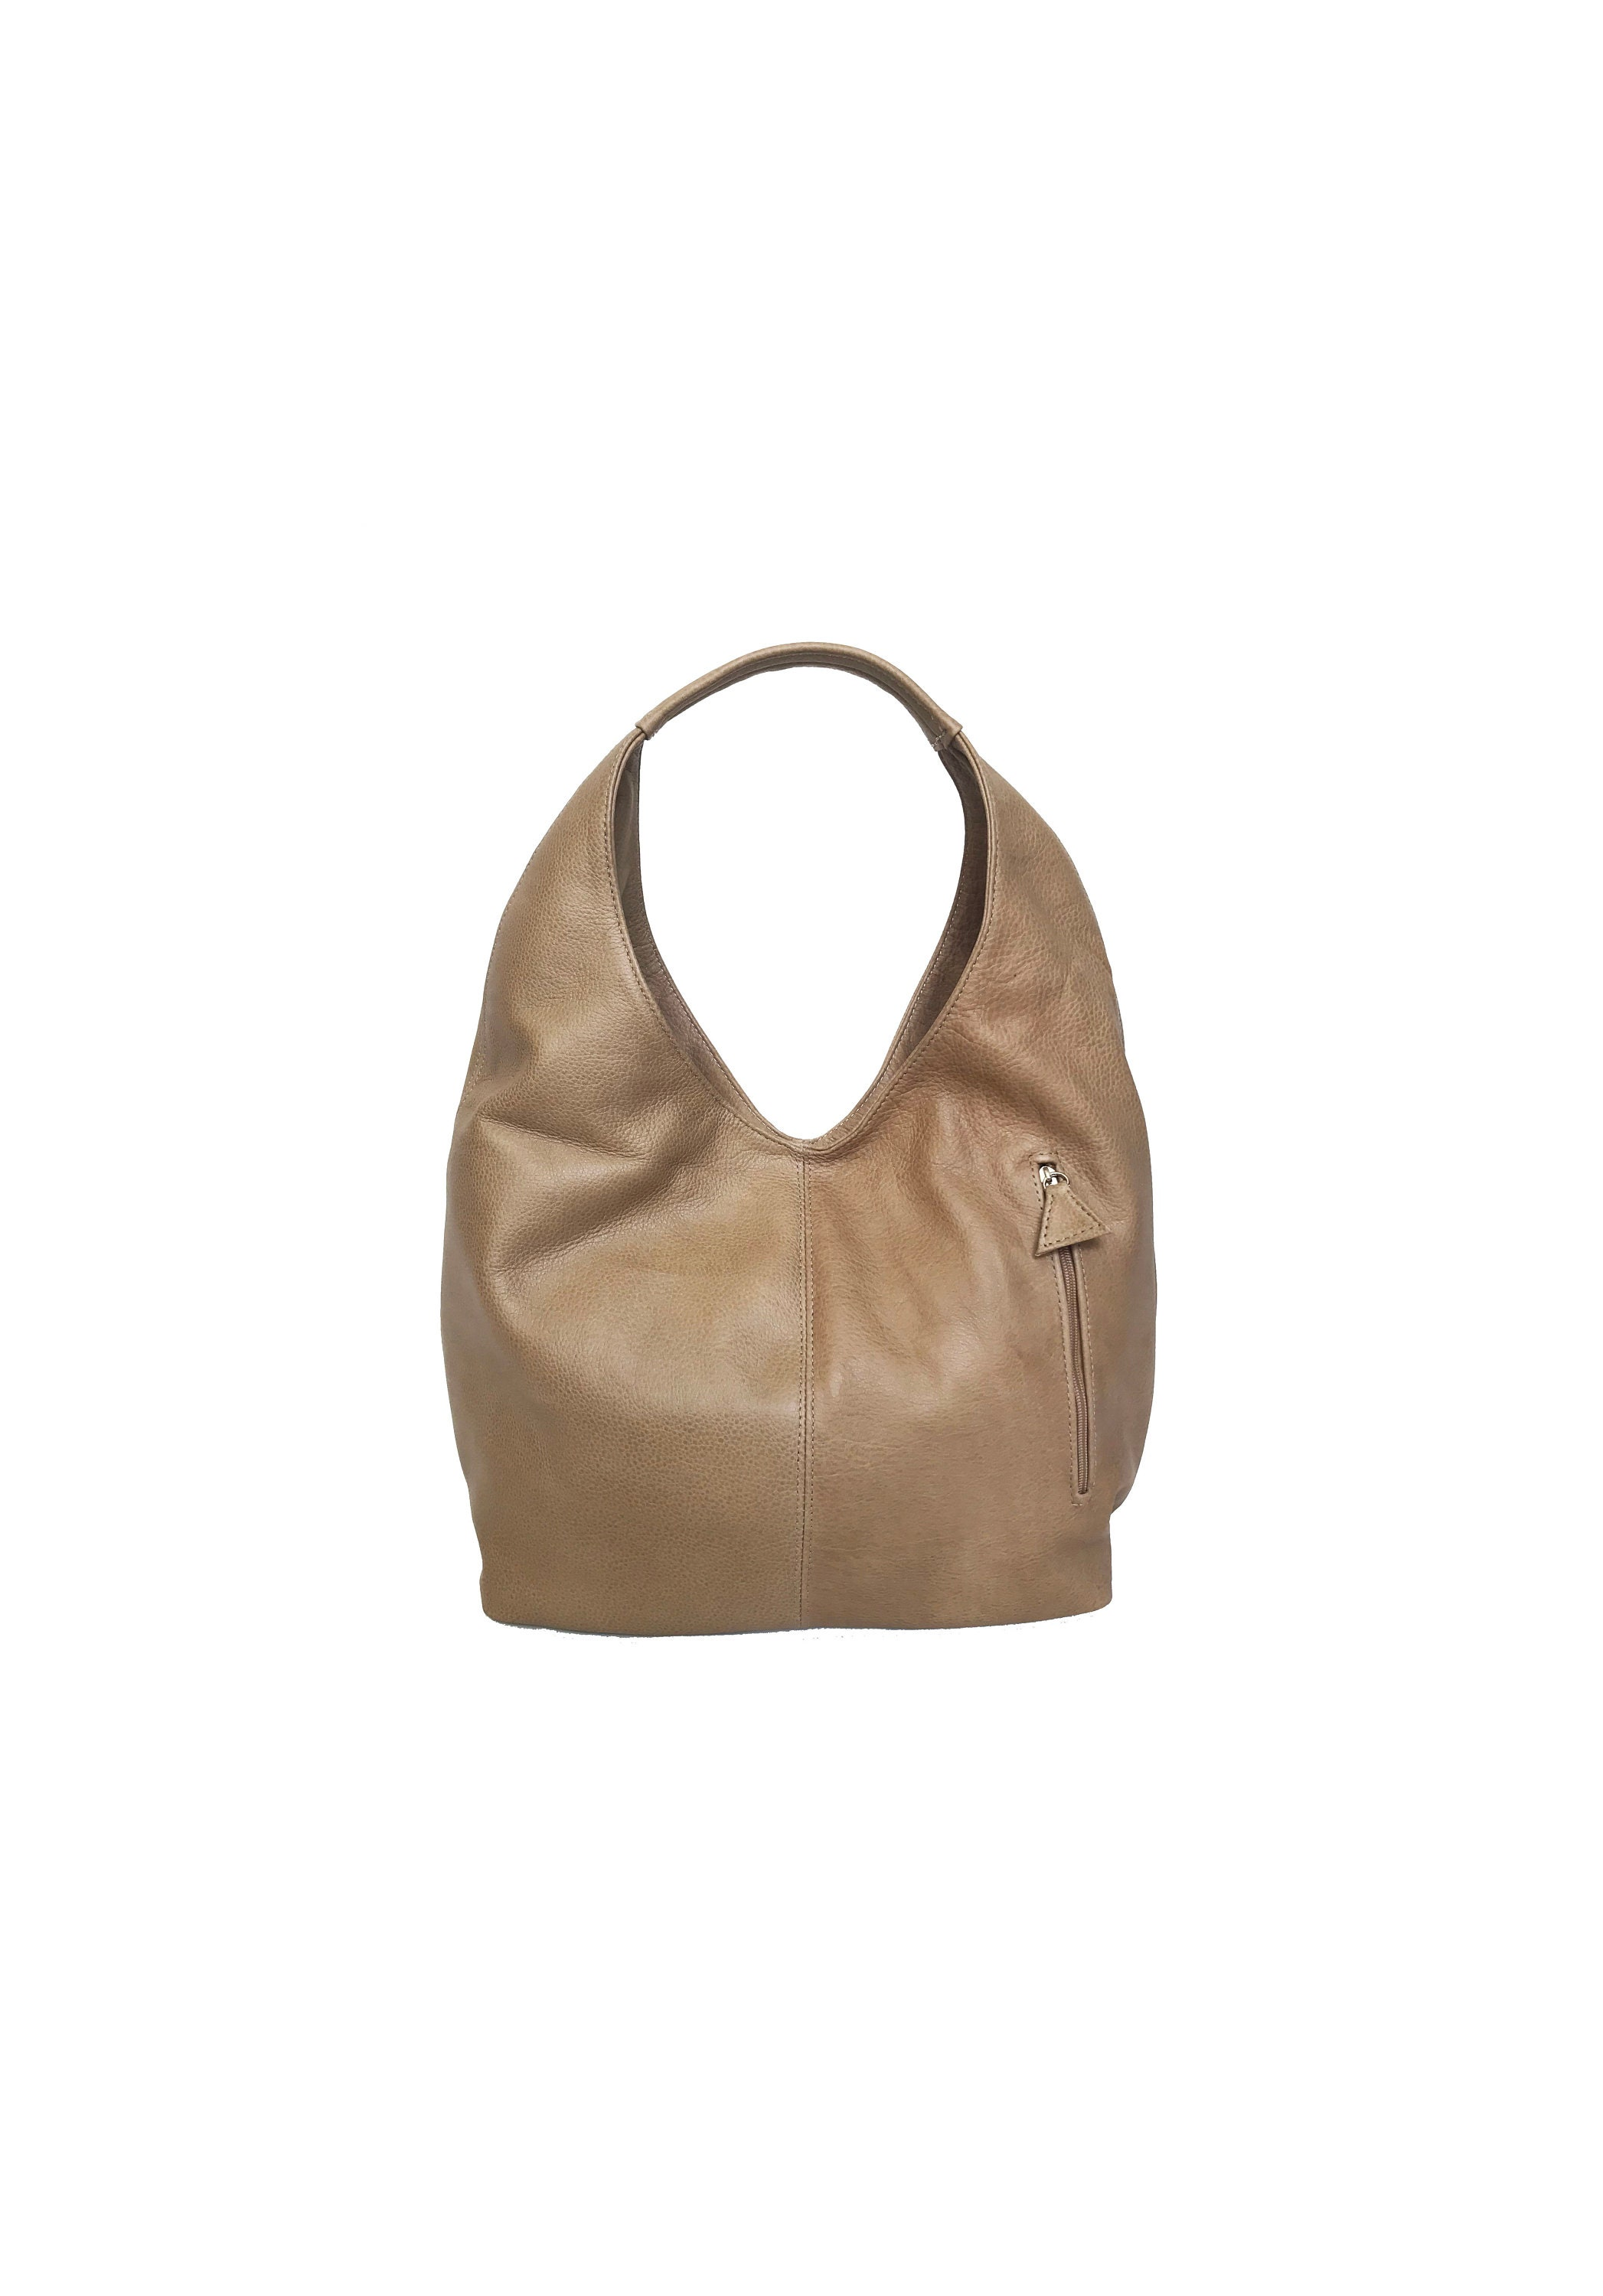 619e6f6e7eb0 Camel Leather Hobo Bag w  Pockets Large Everyday Handbag